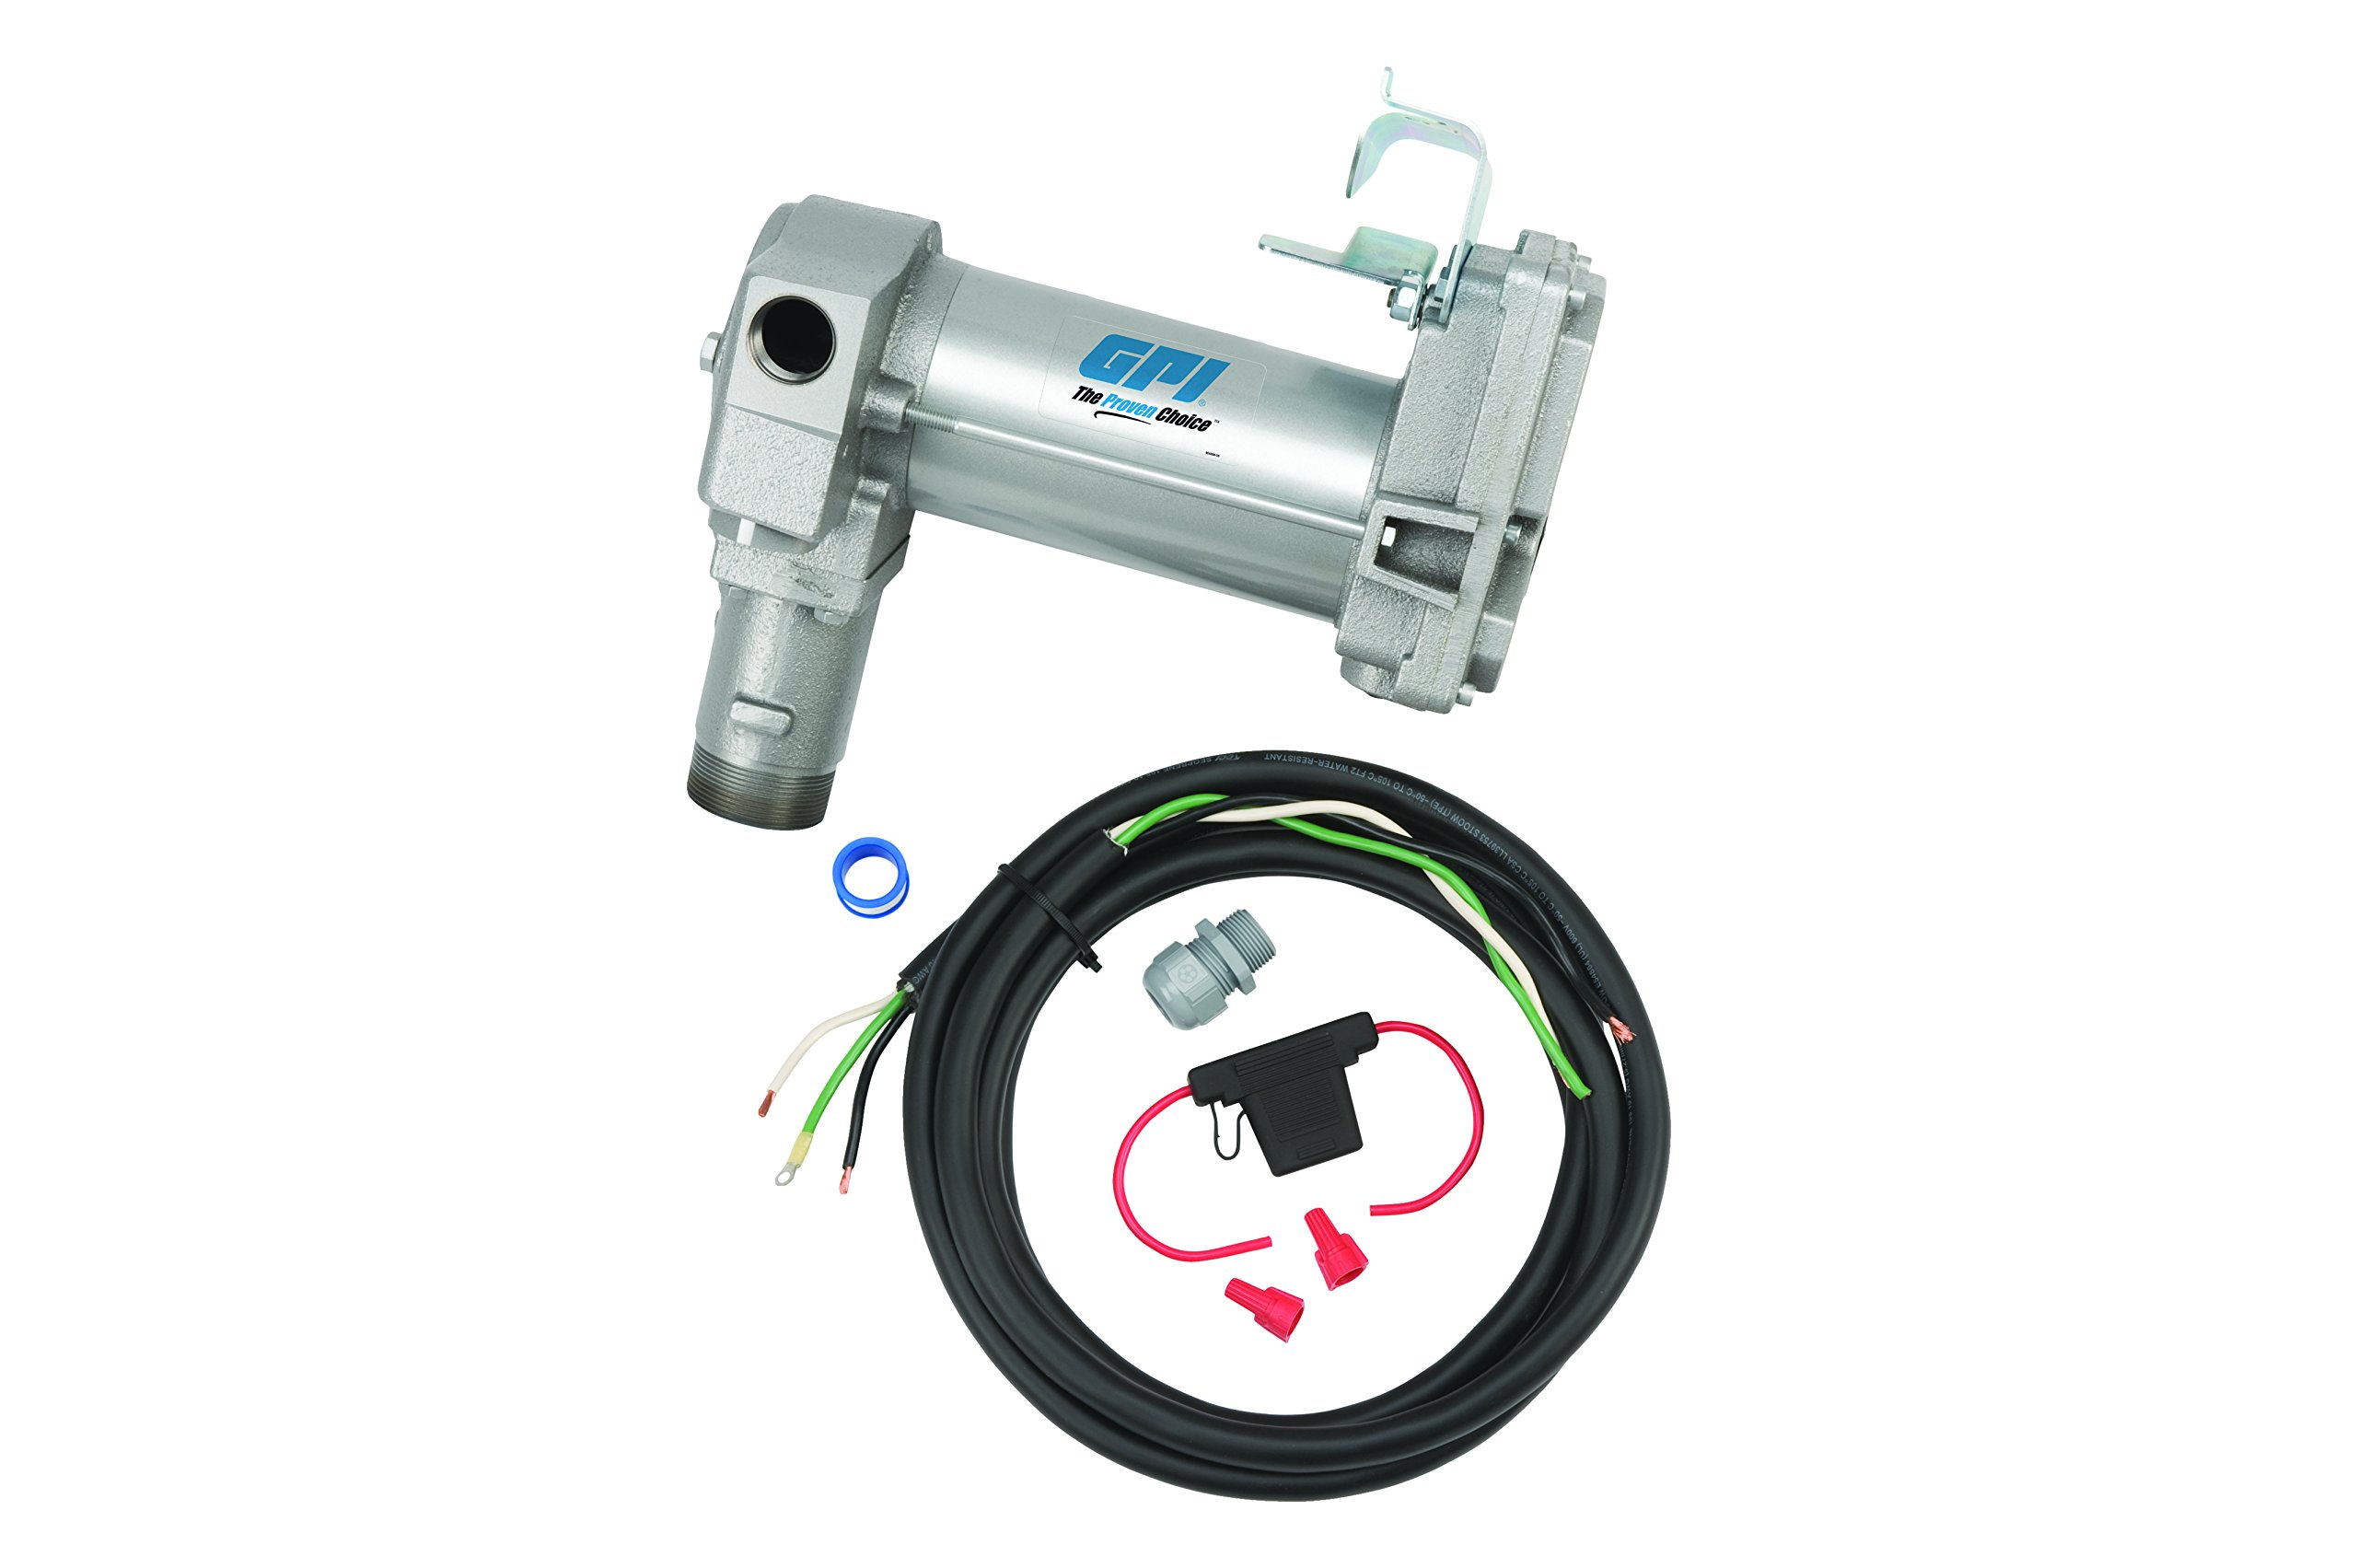 GPI 133240-3, M-3025-PO High Flow Cast Iron Fuel Transfer Pump, 12-VDC, 25 GPM, Straight Base, Pump Only by GPI (Image #1)